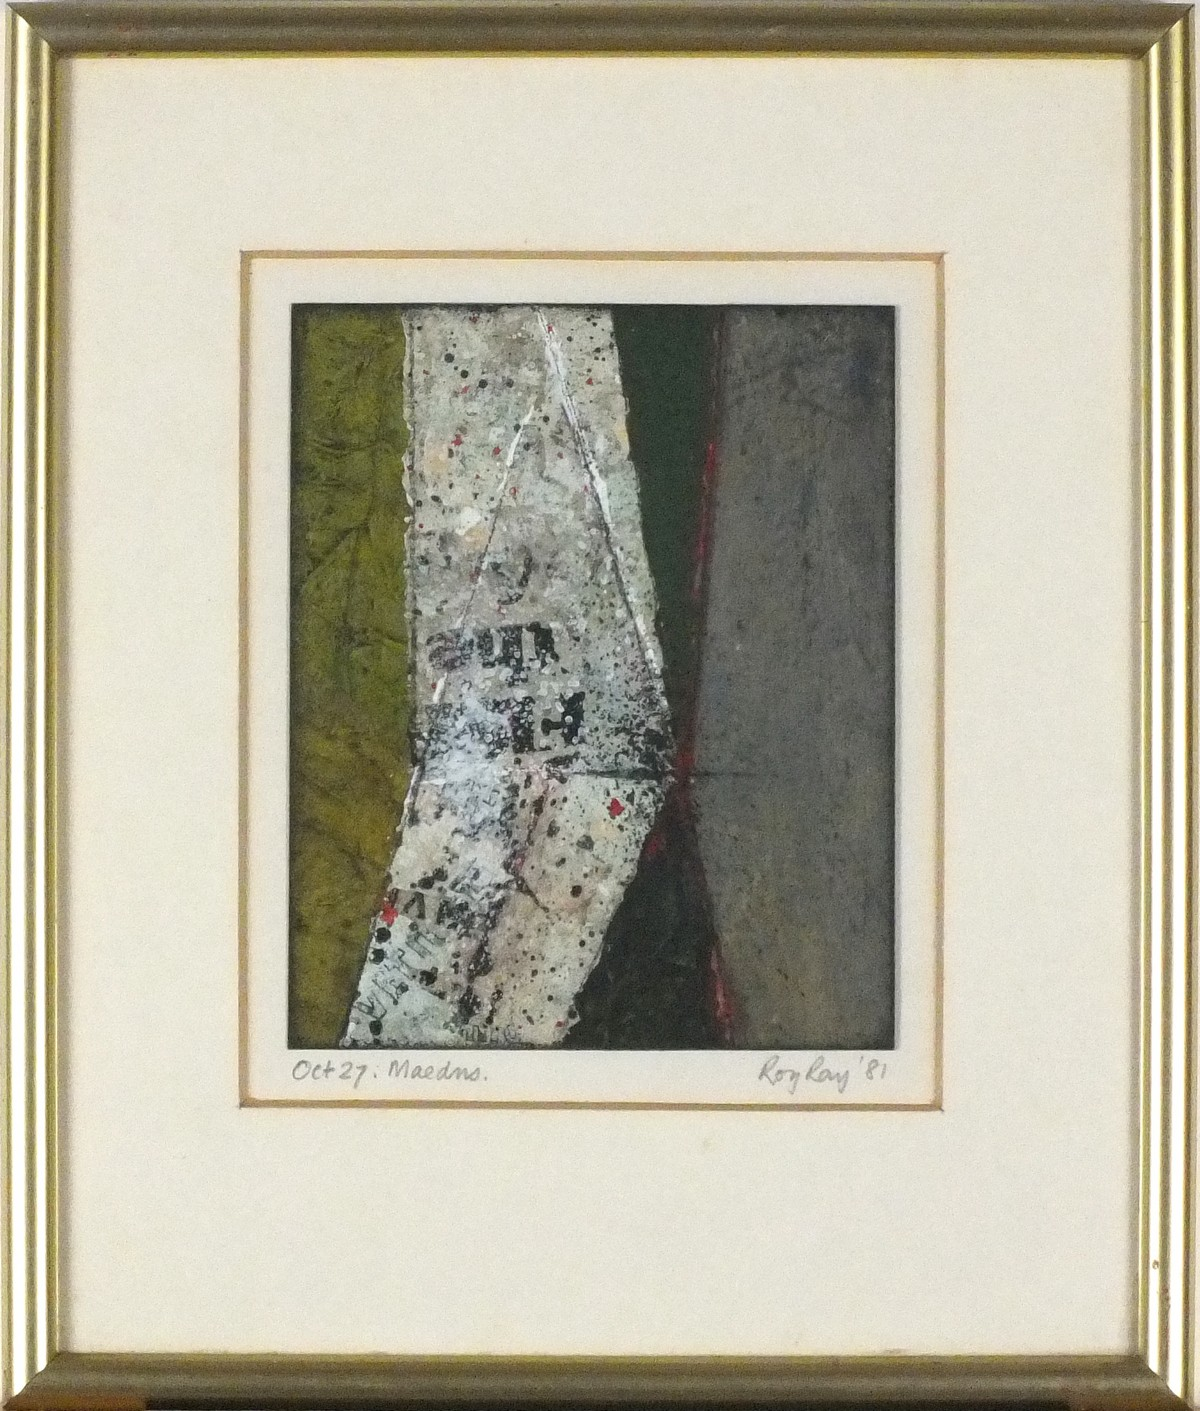 Lot 8 - * Roy RAY (b.1936), Mixed media on board, 'Maedns', Inscribed, signed & dated October 27 (19)81, 6.